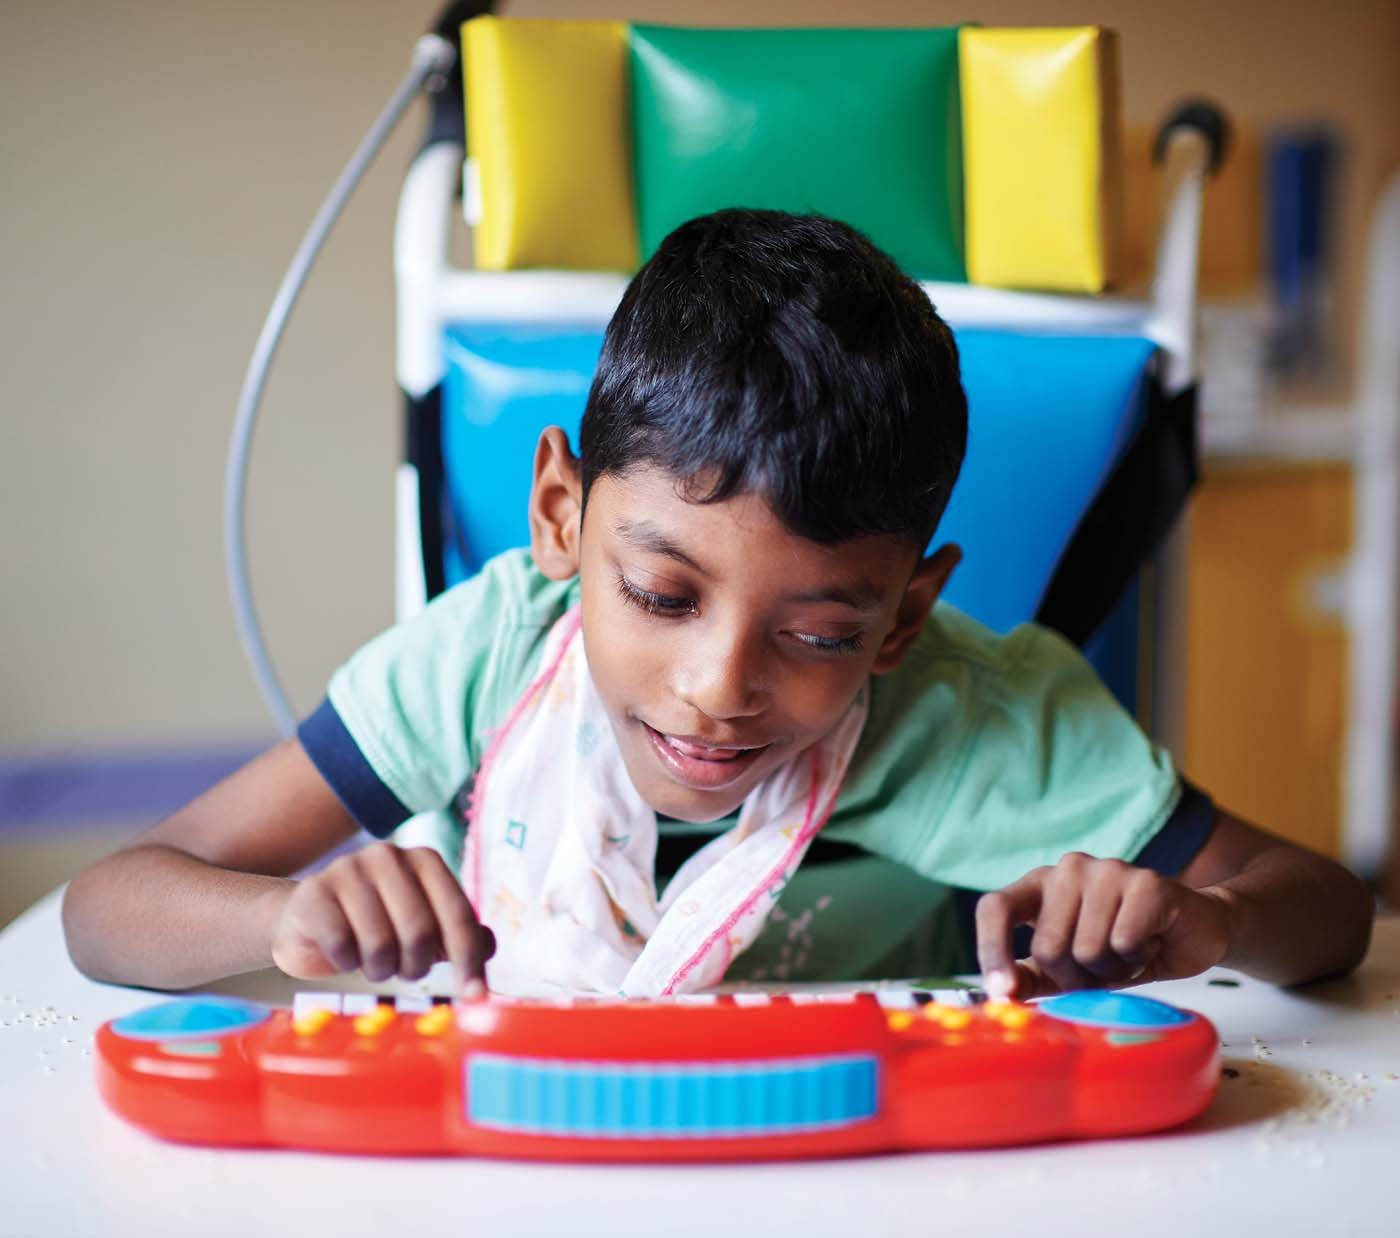 The Foundation is working with Cerebral Palsy Lanka Foundation to provide much needed care and education for children with Cerebral Palsy. This programme offers children with therapeutic, simulative and sensory integration mechanisms managed by specialised and trained staff